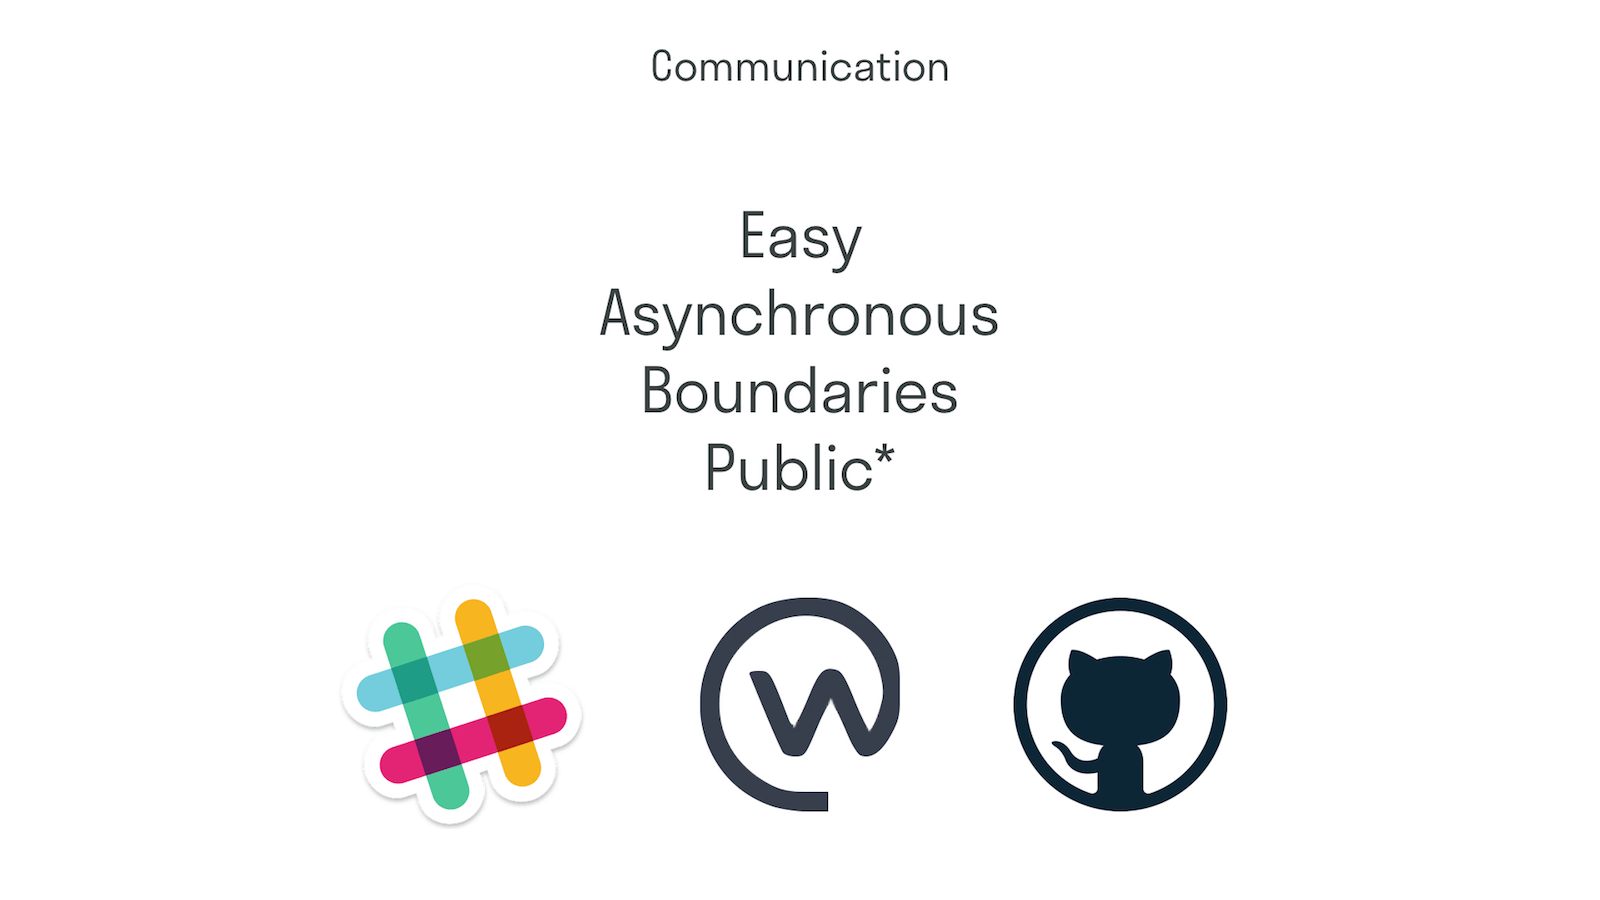 We aim to keep communication easy, asynchronous, non-disruptive and public